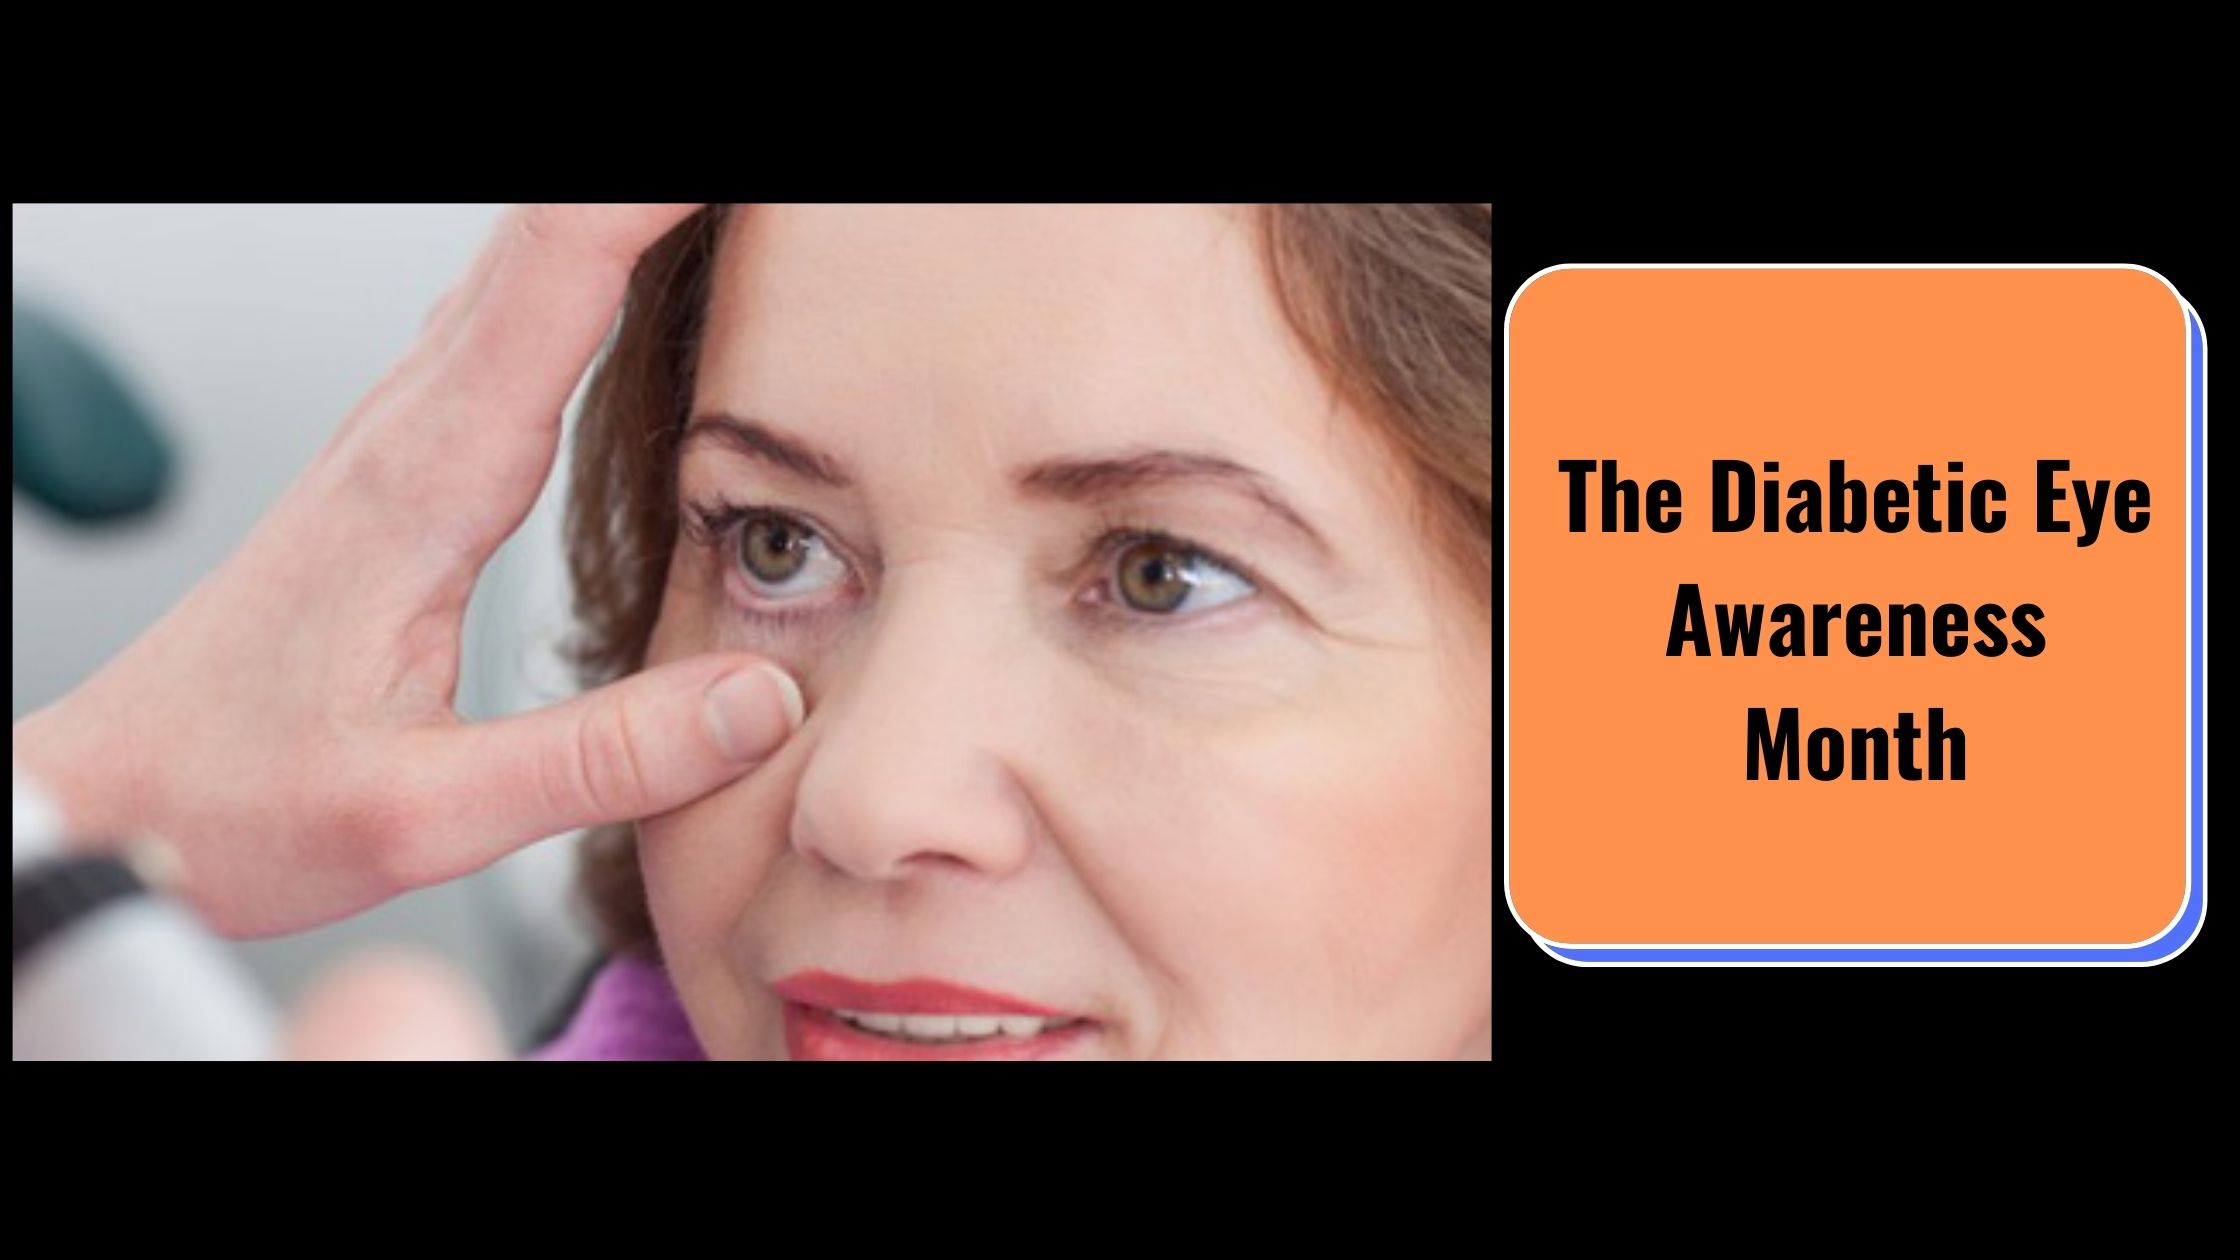 The Diabetic Eye Awareness Month